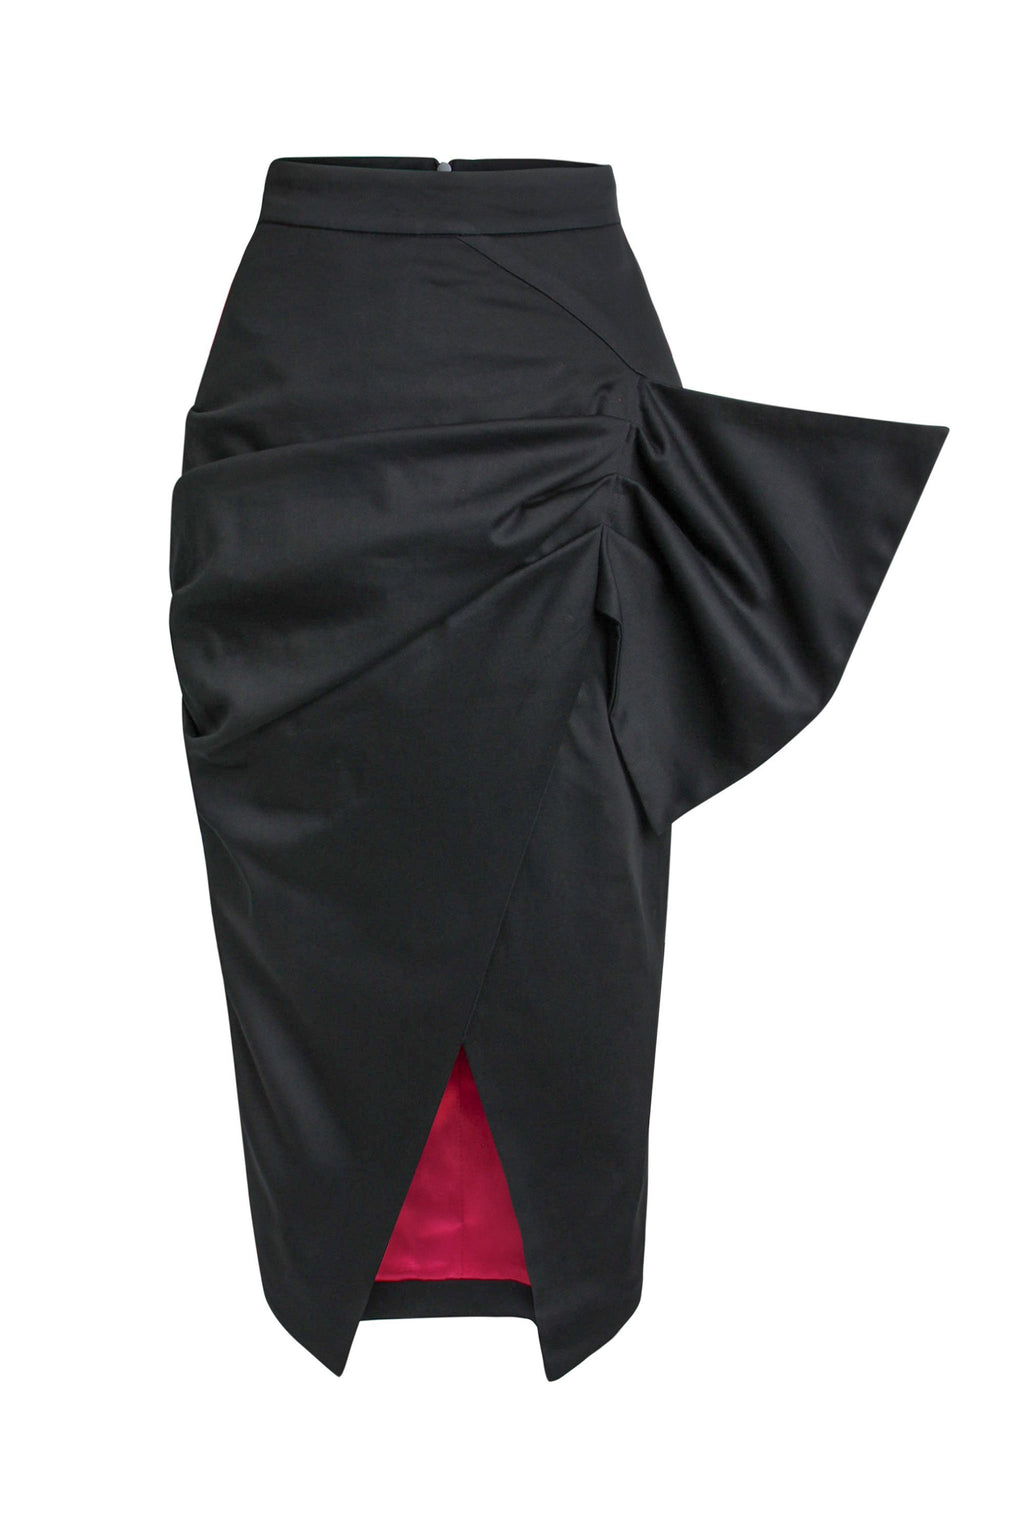 Glam Leisure Bodycon Wrap Midi Skirt - Black - Tia Dorraine London